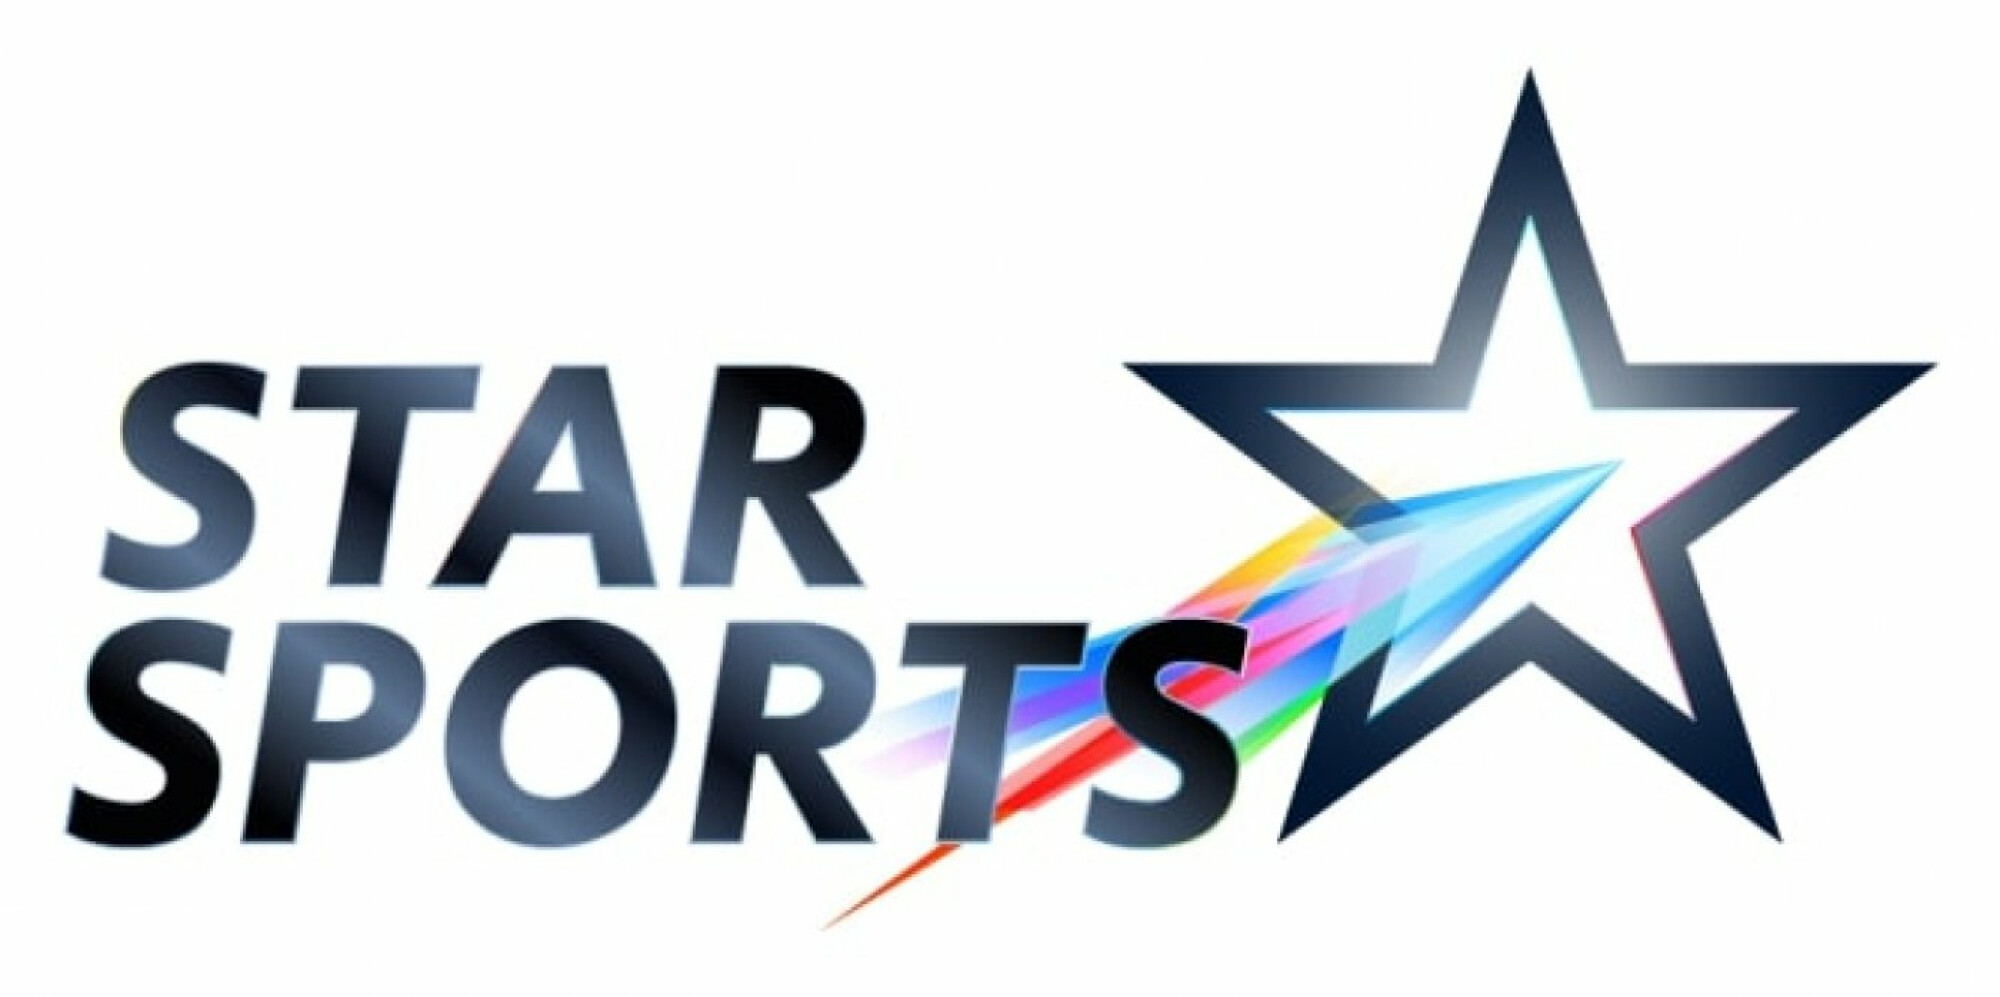 BREAKING NEWS: Star Sports launch a new channel for Indian Football!